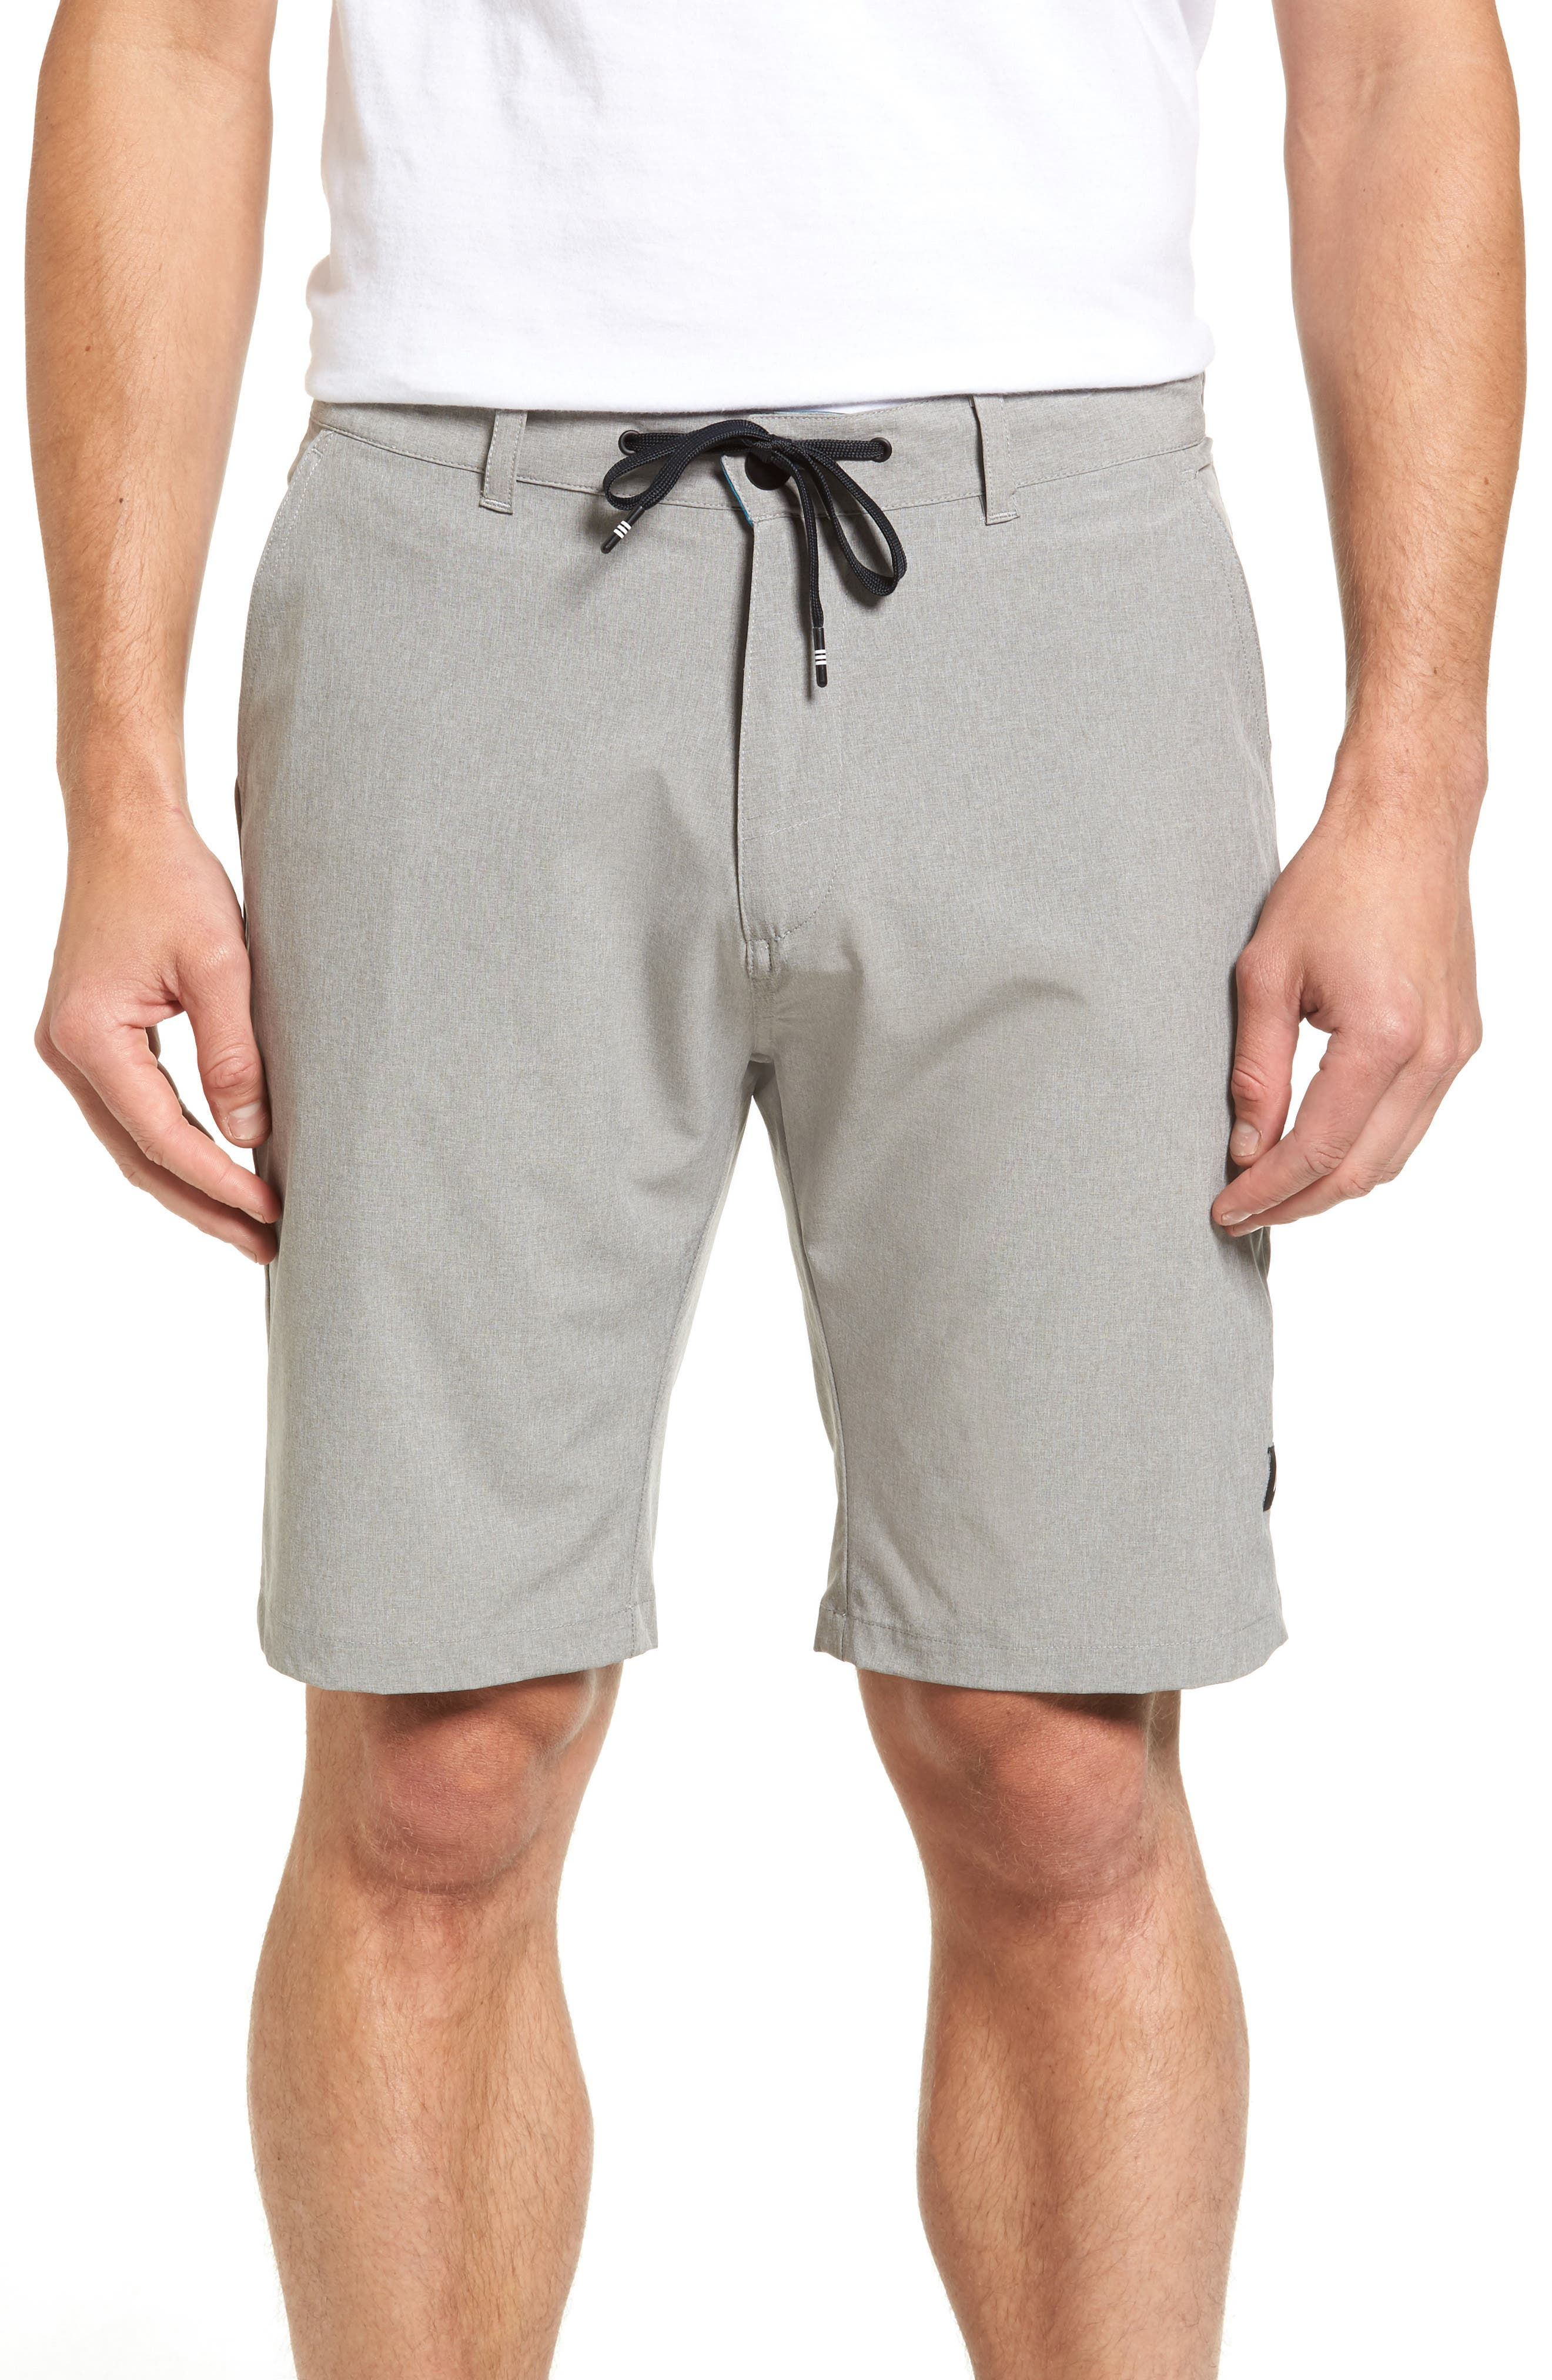 Imperial Motion Freedom Carbon Cruiser Shorts